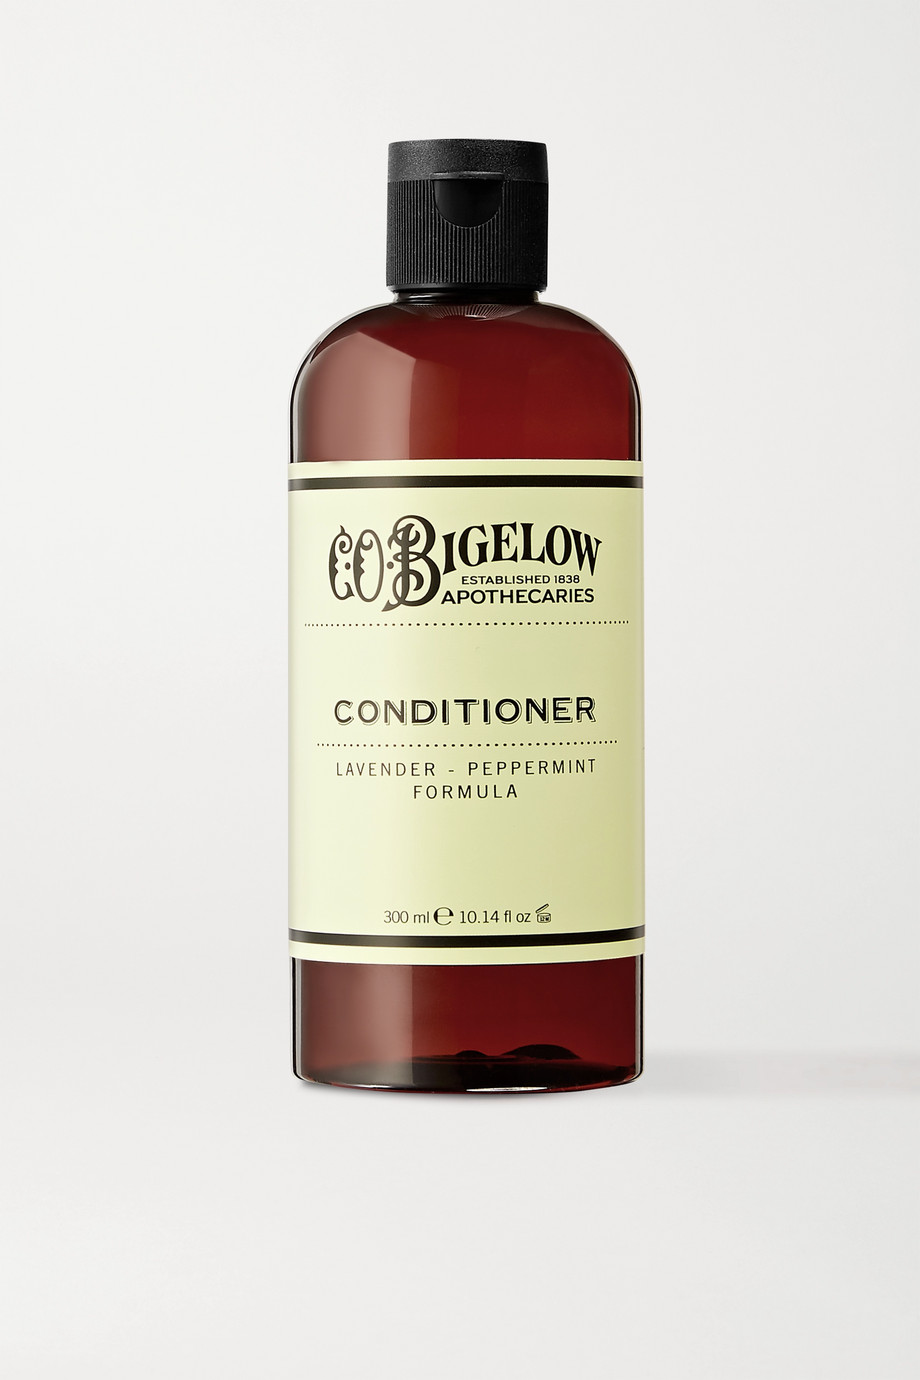 C.O. BIGELOW Lavender Peppermint Conditioner, 300ml